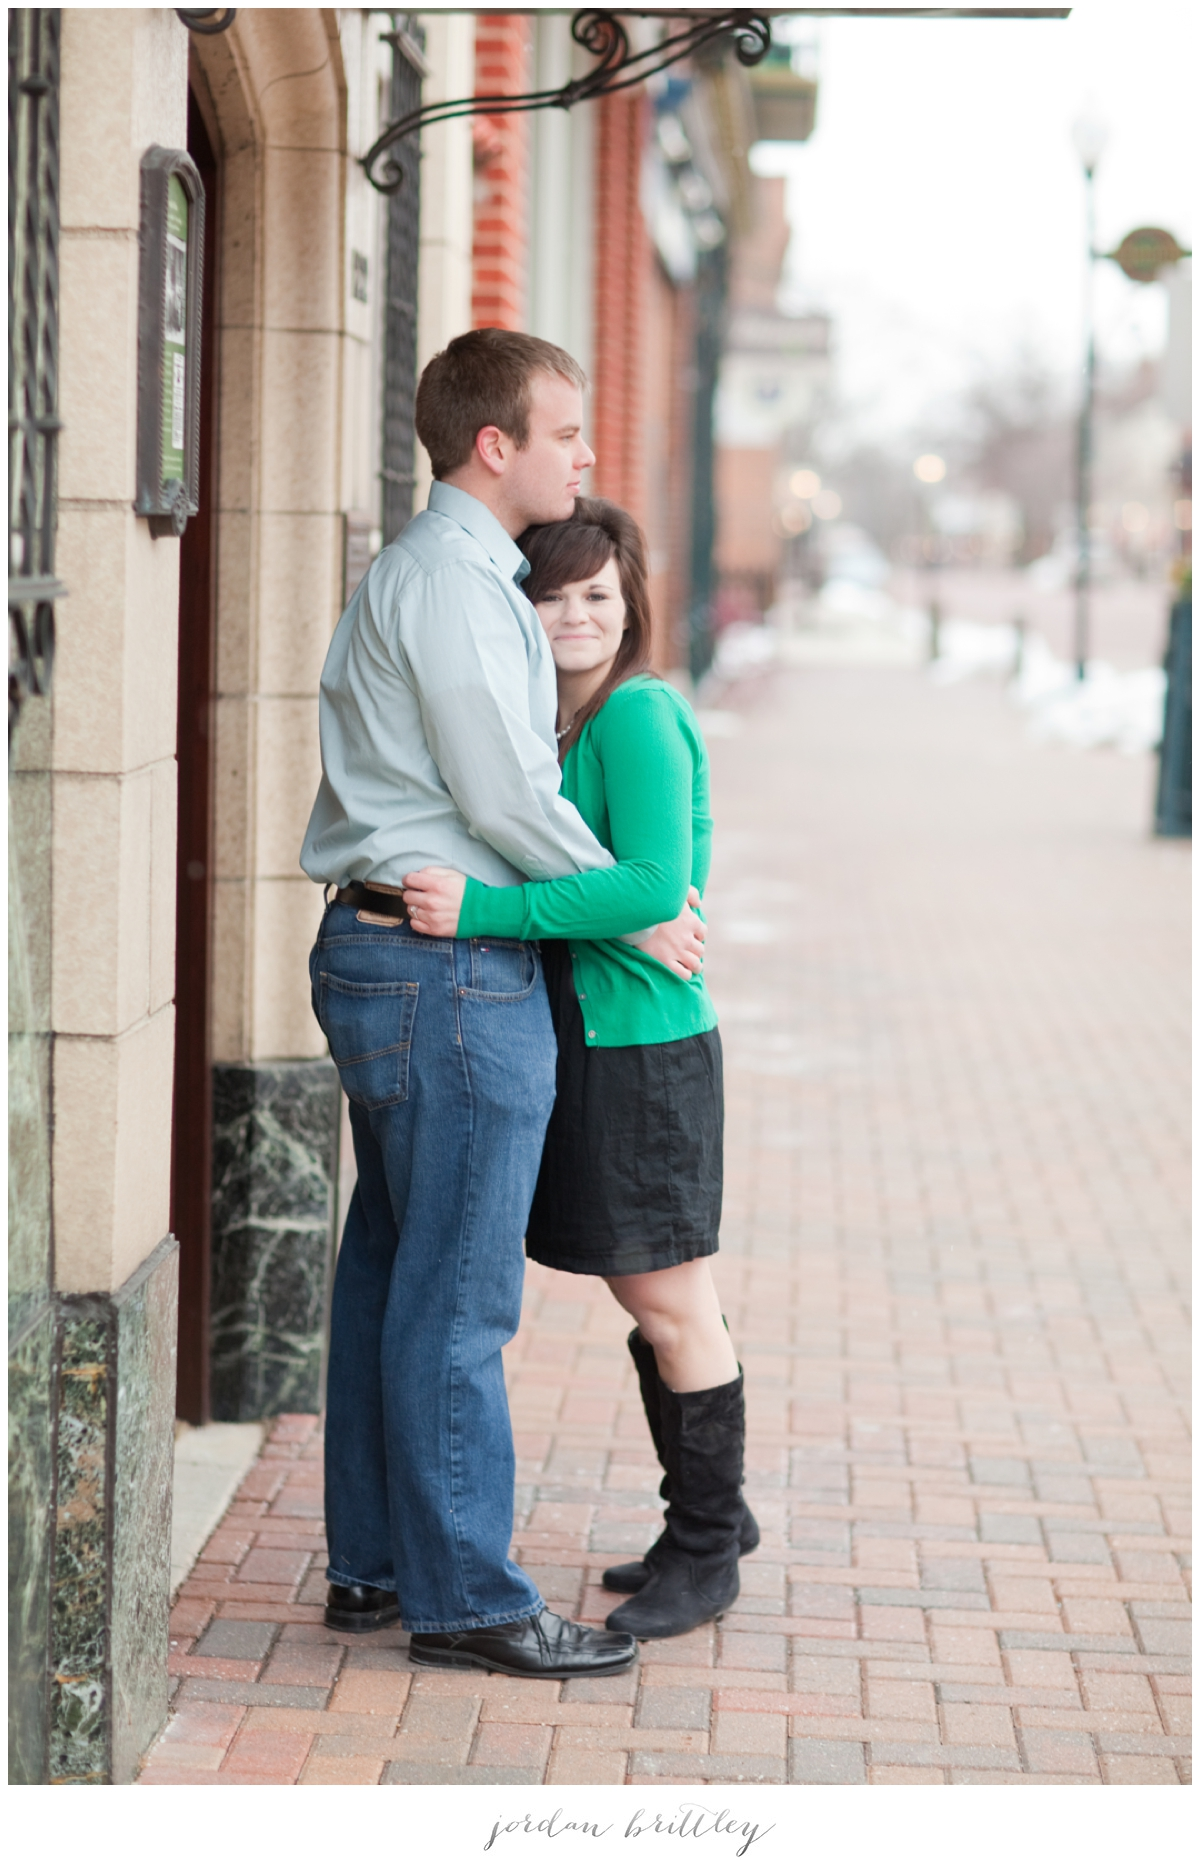 St Charles Engagement - Main Street St Charles by Jordan Brittley_002